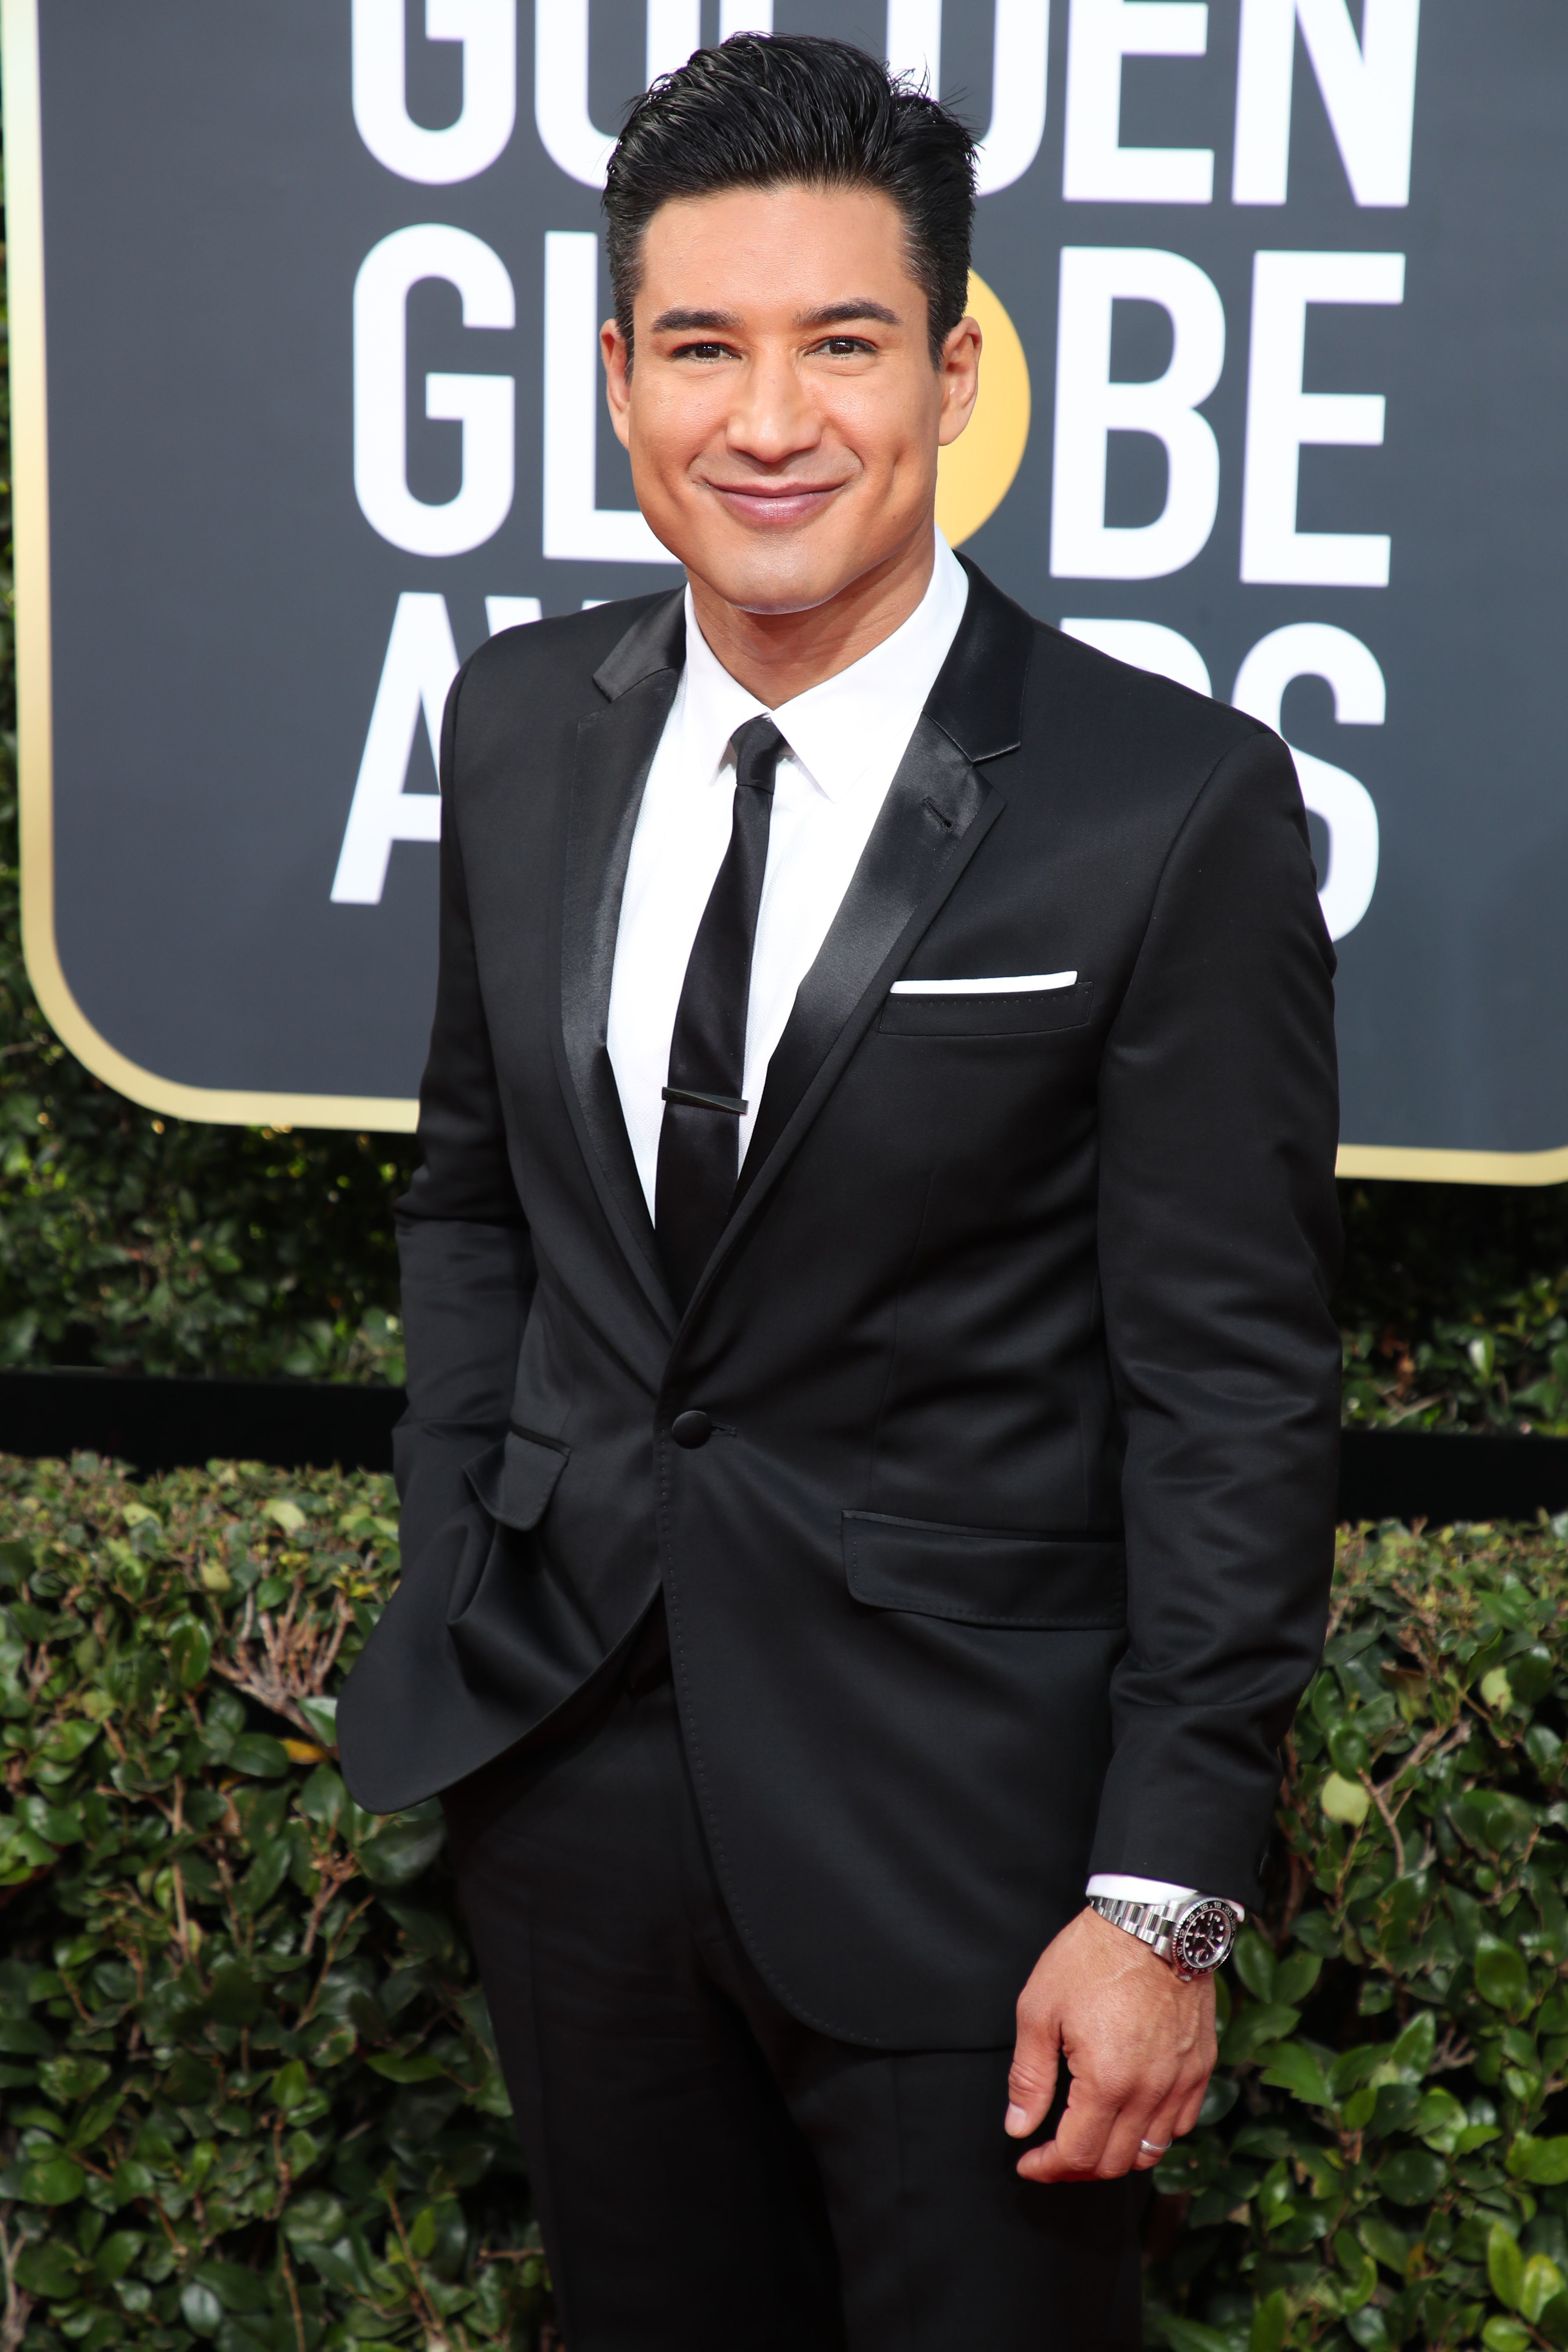 Mario Lopez attends the 75th Annual Golden Globe Awards in Los Angeles on Jan. 7, 2018.